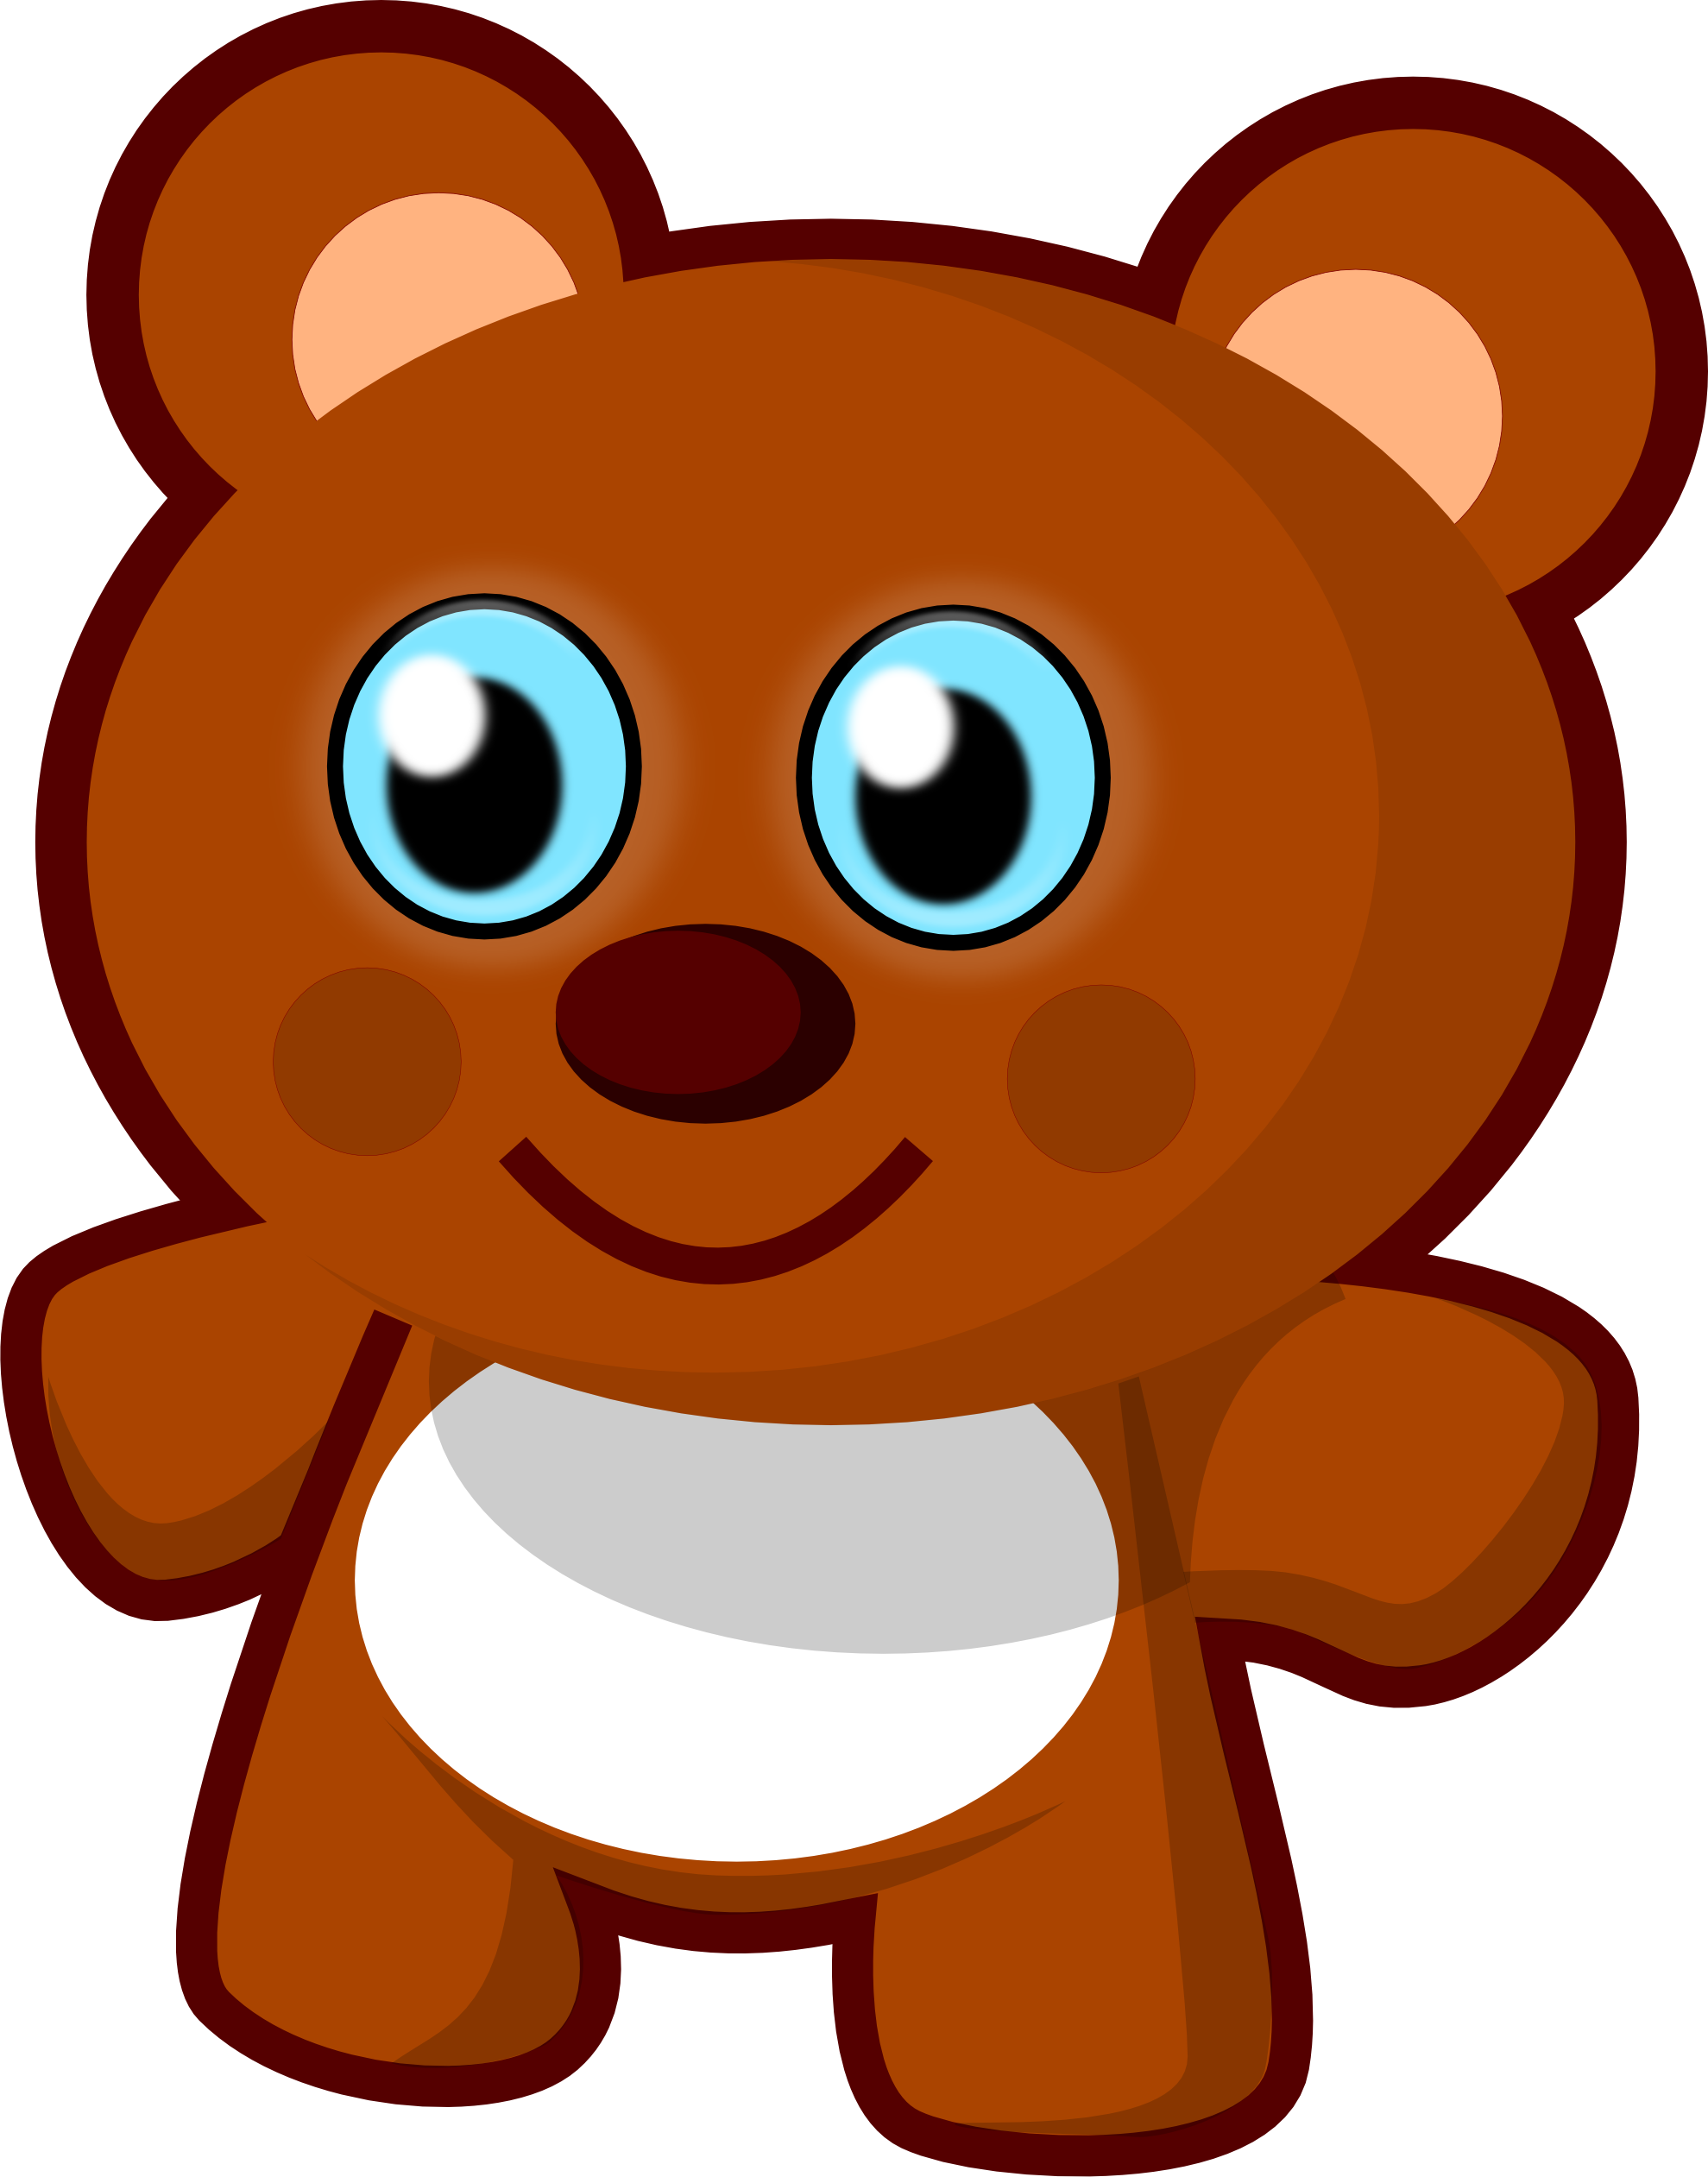 Cute bear best pictures. Conflict clipart office